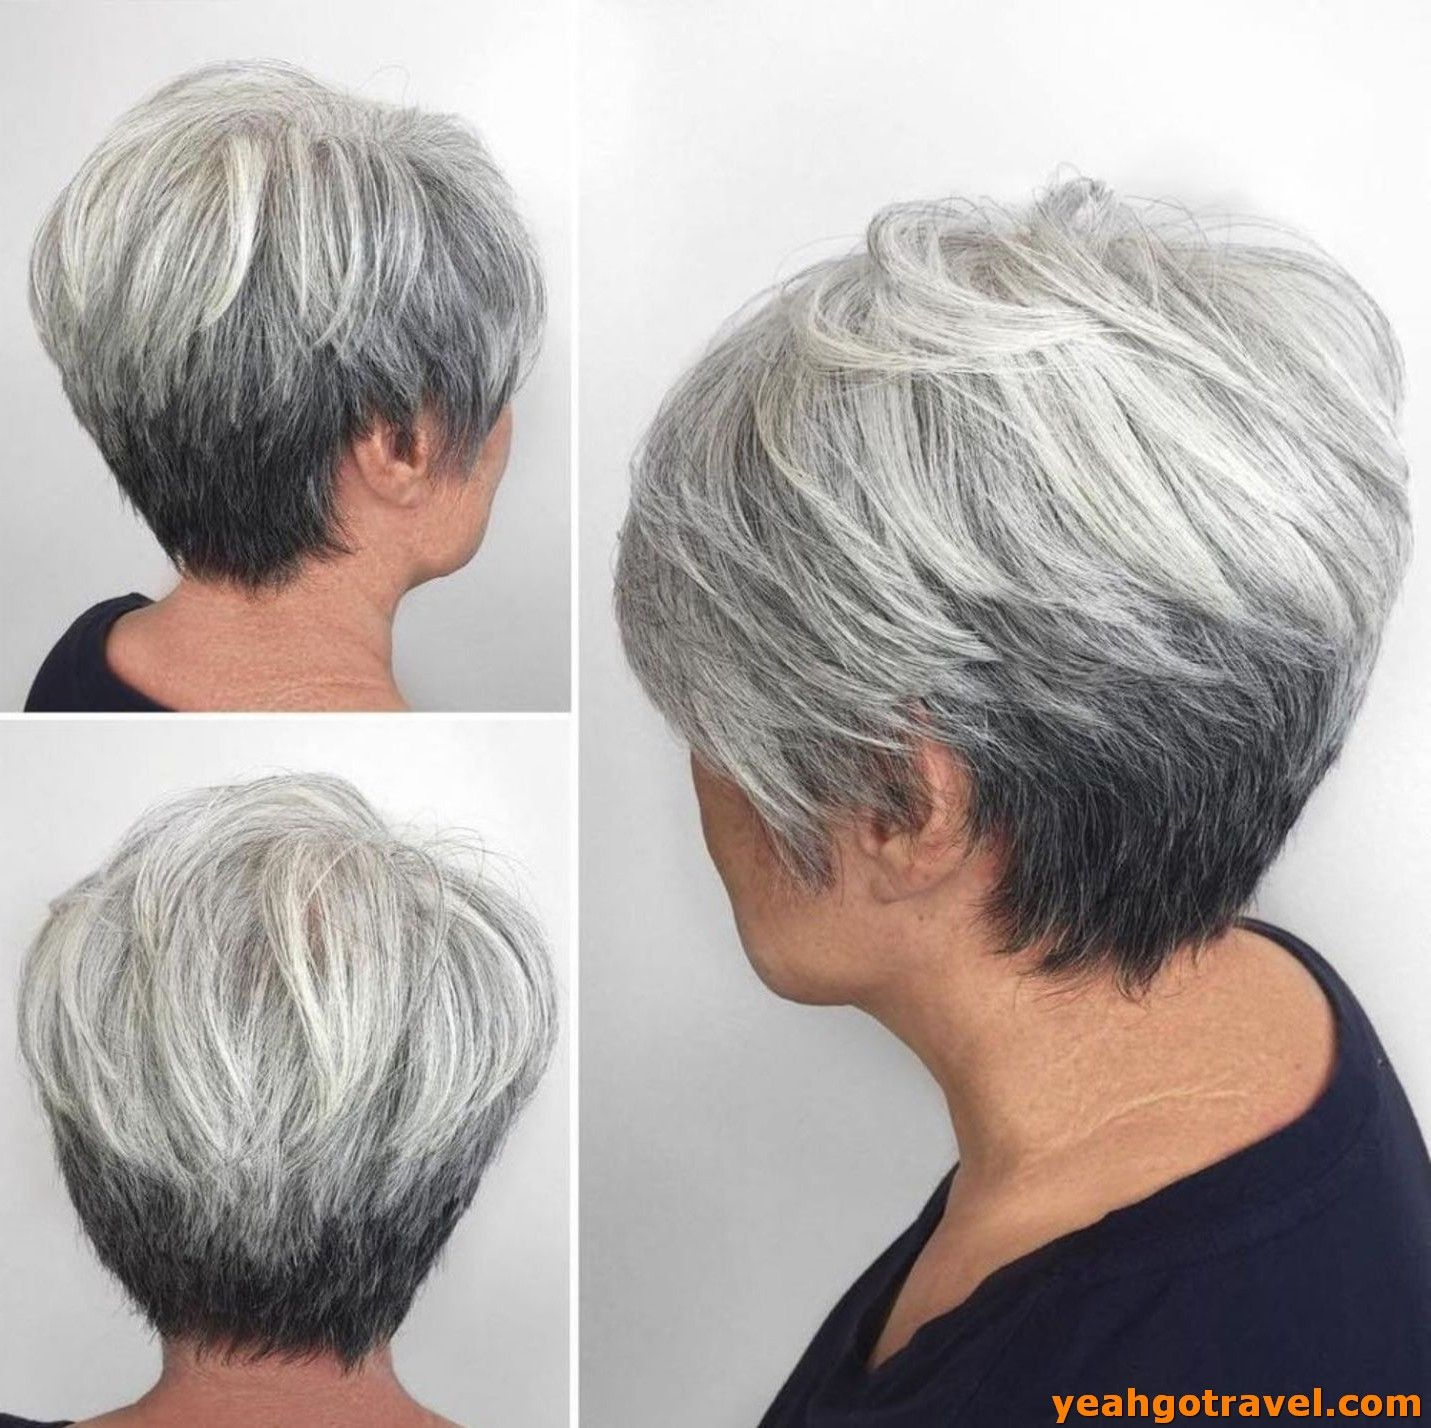 36 Most Coolest Short Grey Haircuts We Love Yeahgotravel Com Haircuts For Fine Hair Hair Styles For Women Over 50 Short Grey Haircuts